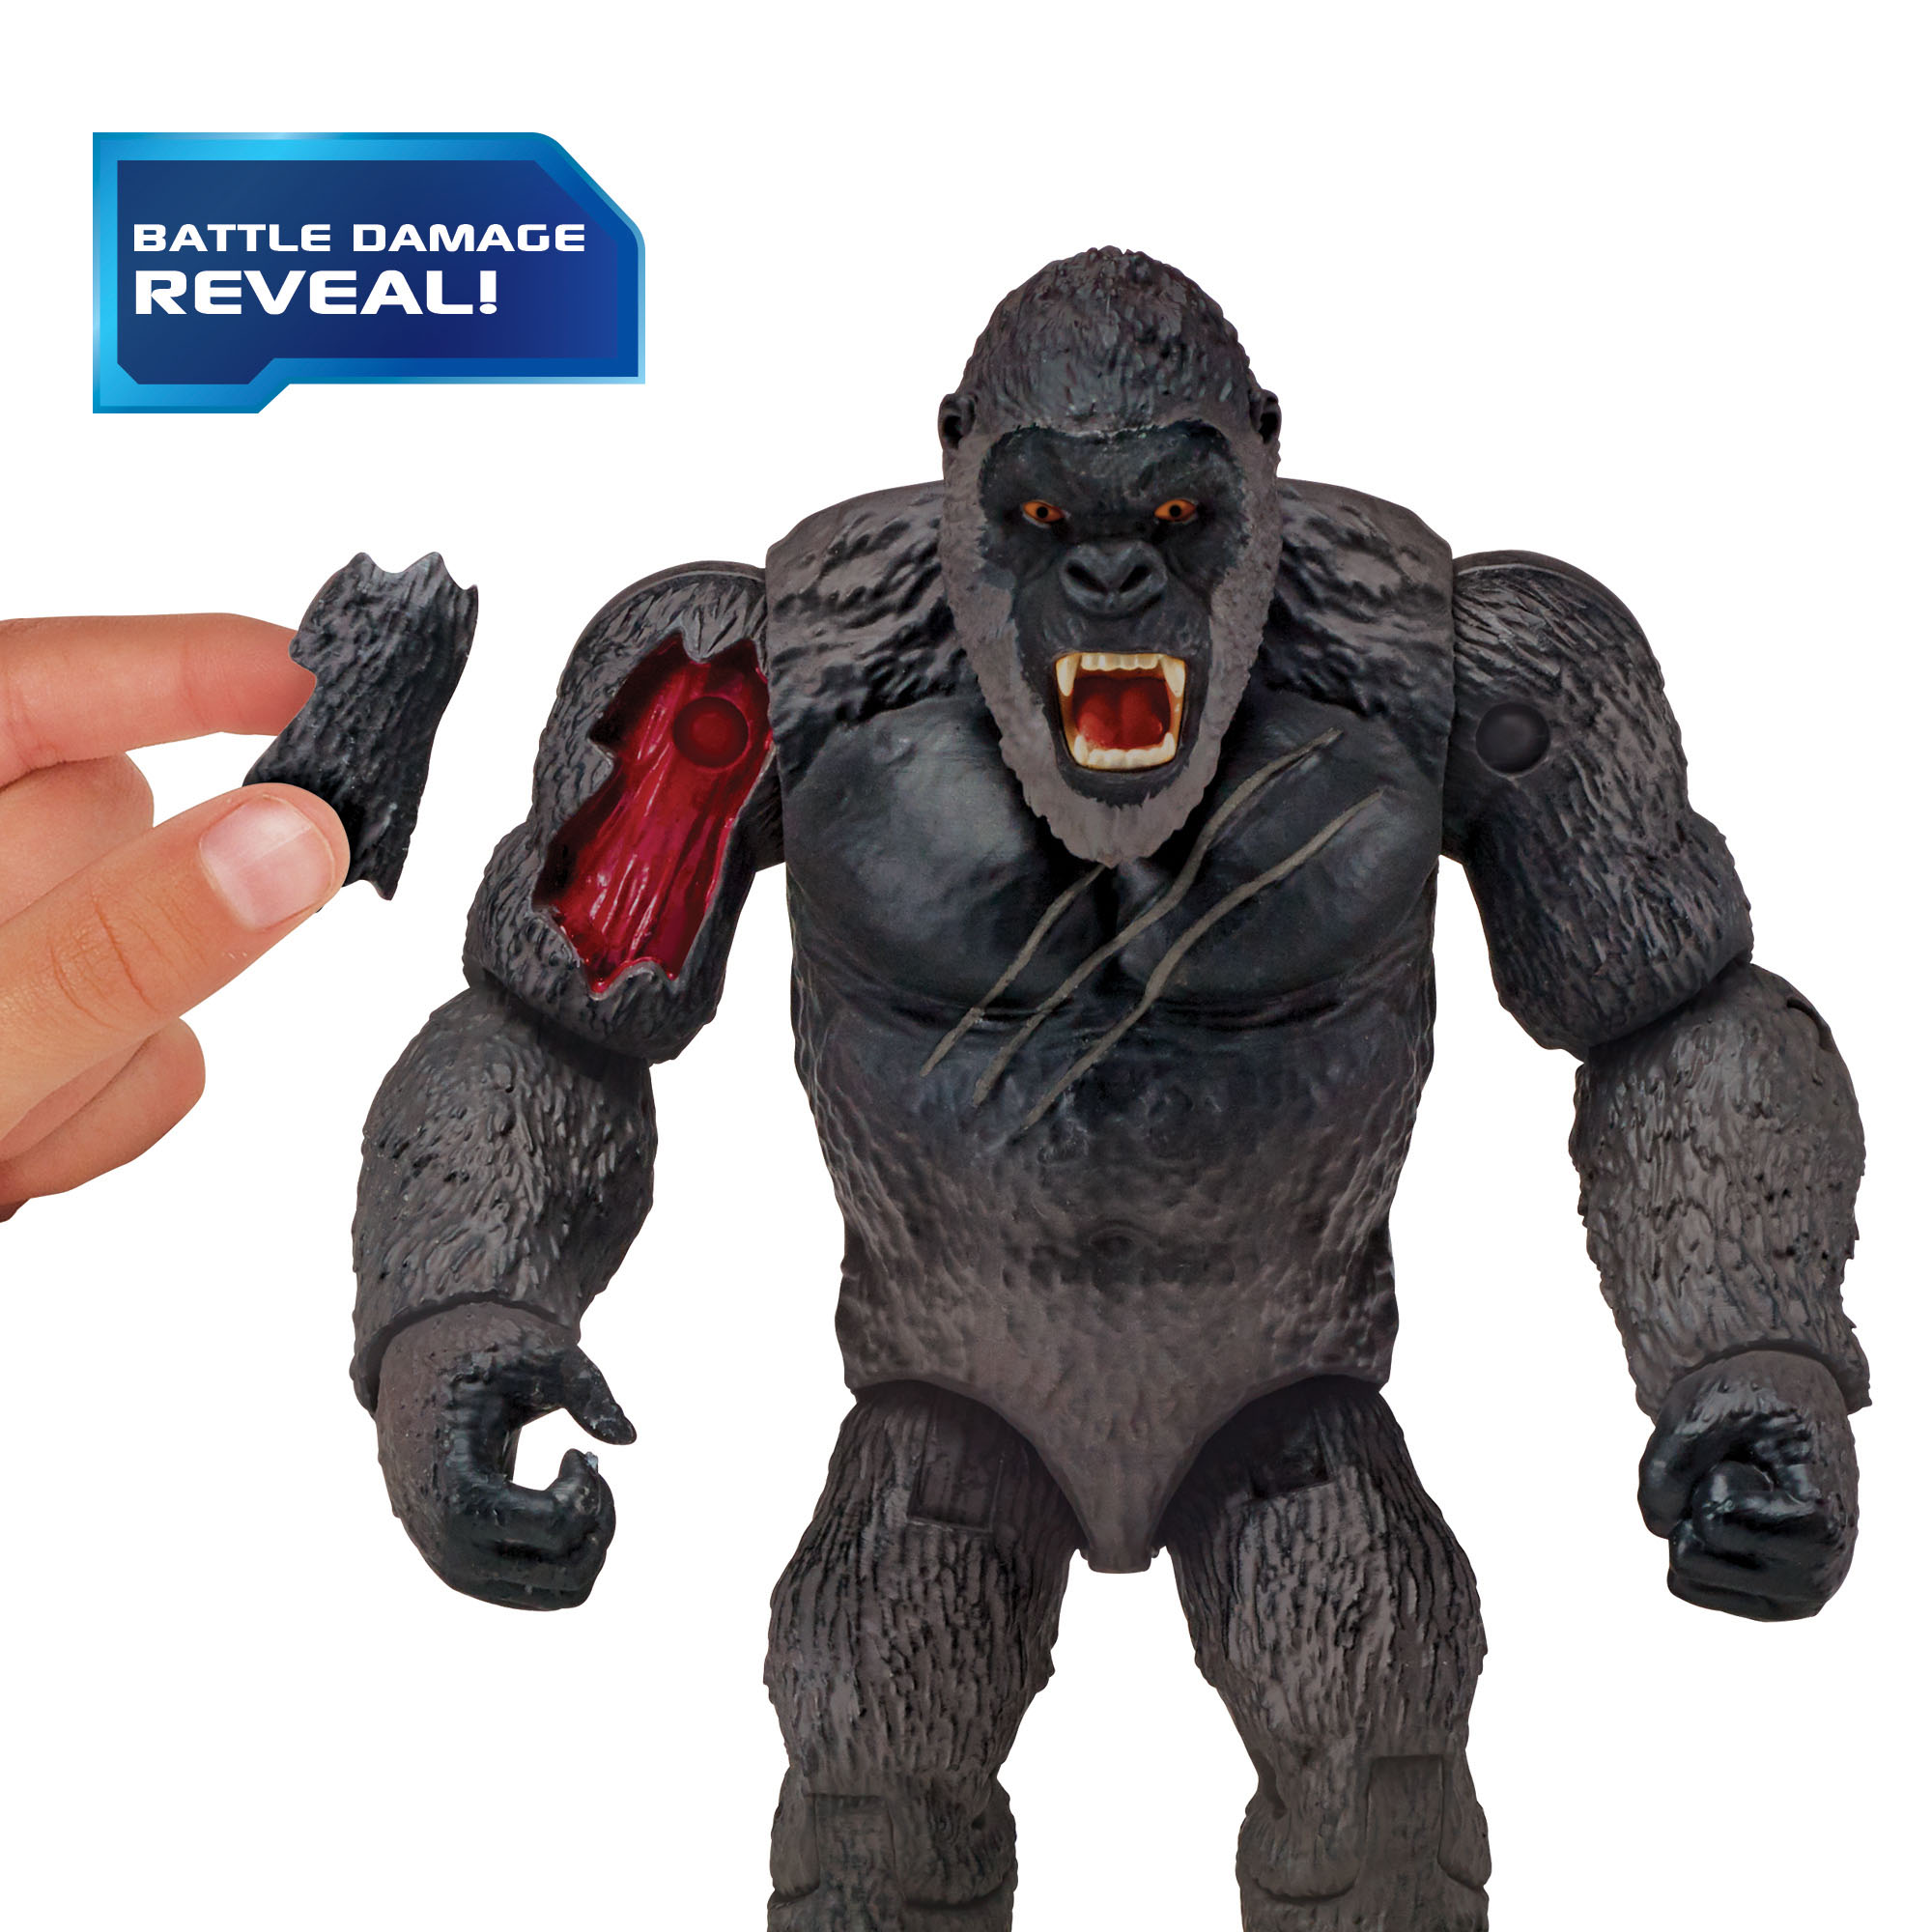 Godzilla Vs King Kong Figures